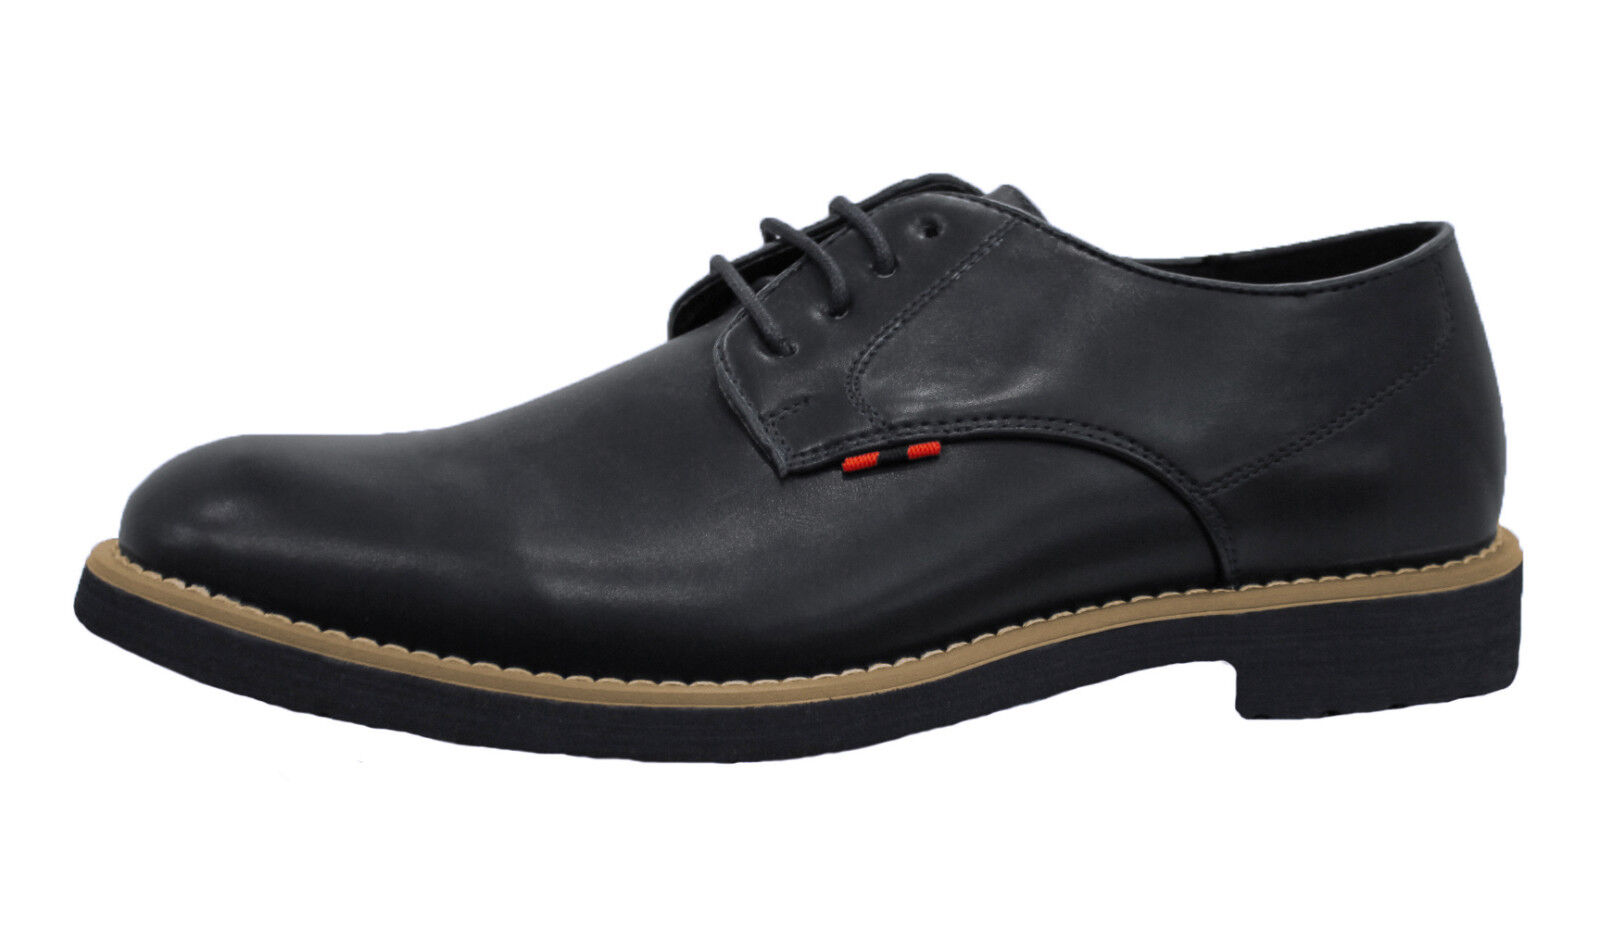 shoes men DIAMOND CASUAL black CUIR ÉCOLOGIQUE BOTTINES RICHELIEU ÉLÉGANT